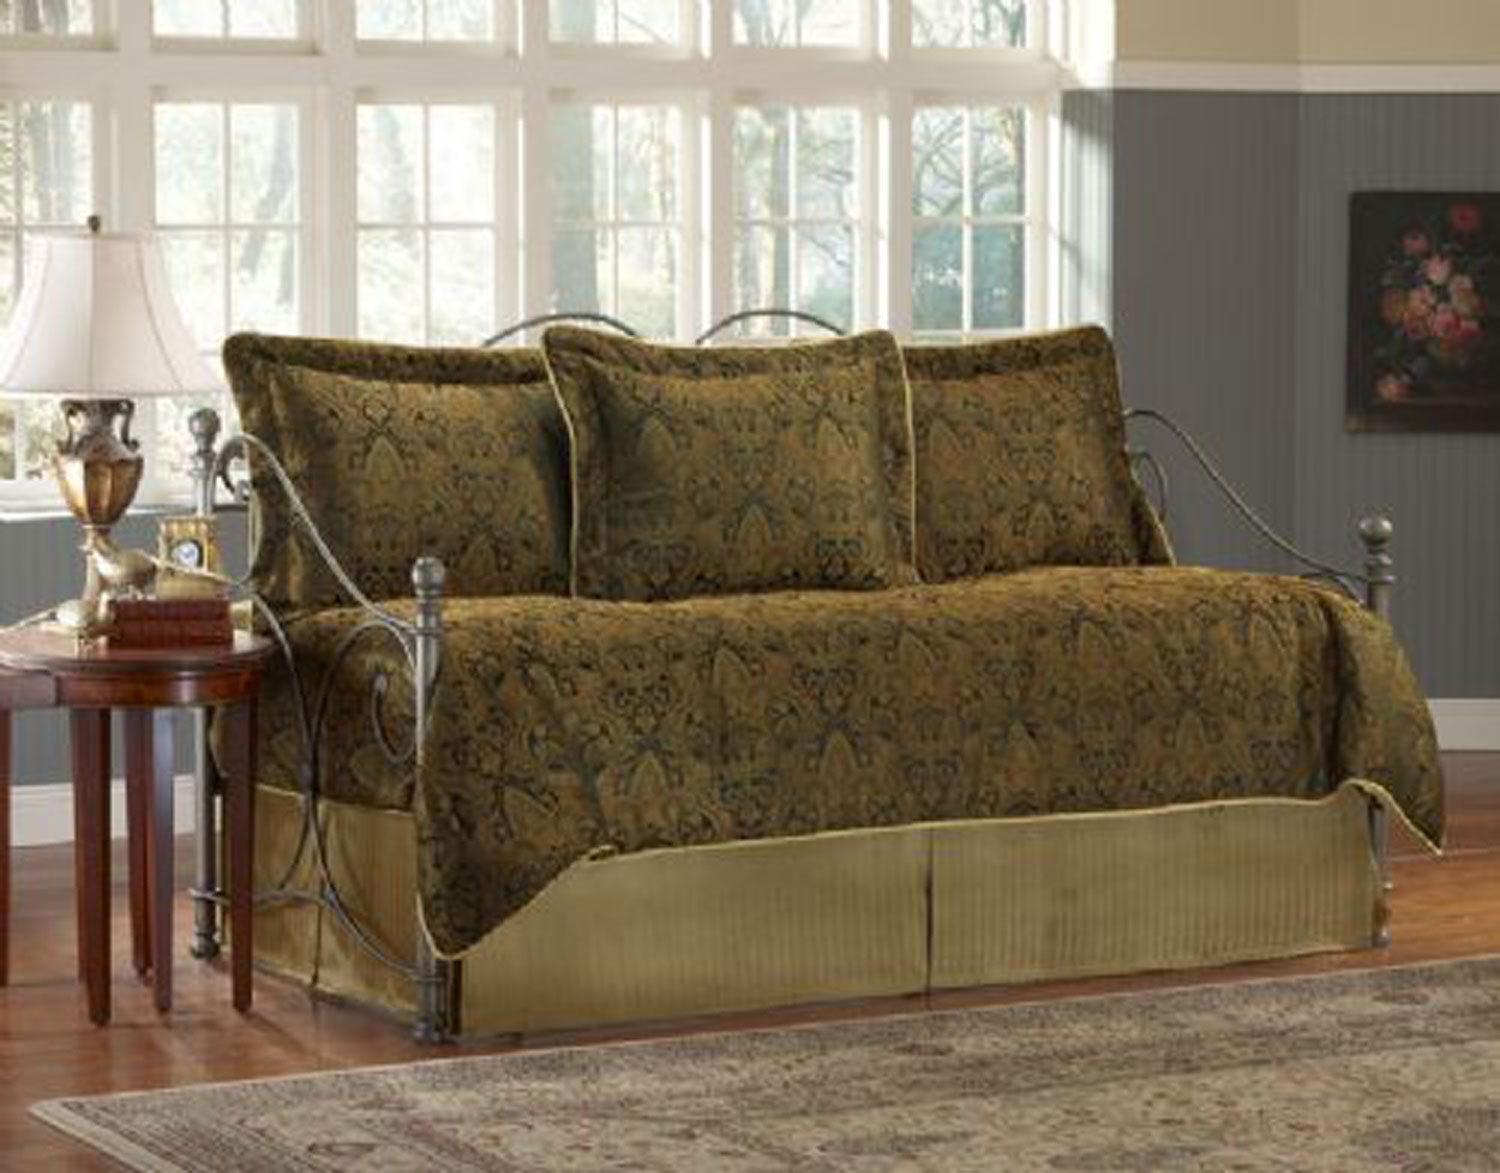 Manchester By Southern Textiles Daybeds Beddingsuperstore Com